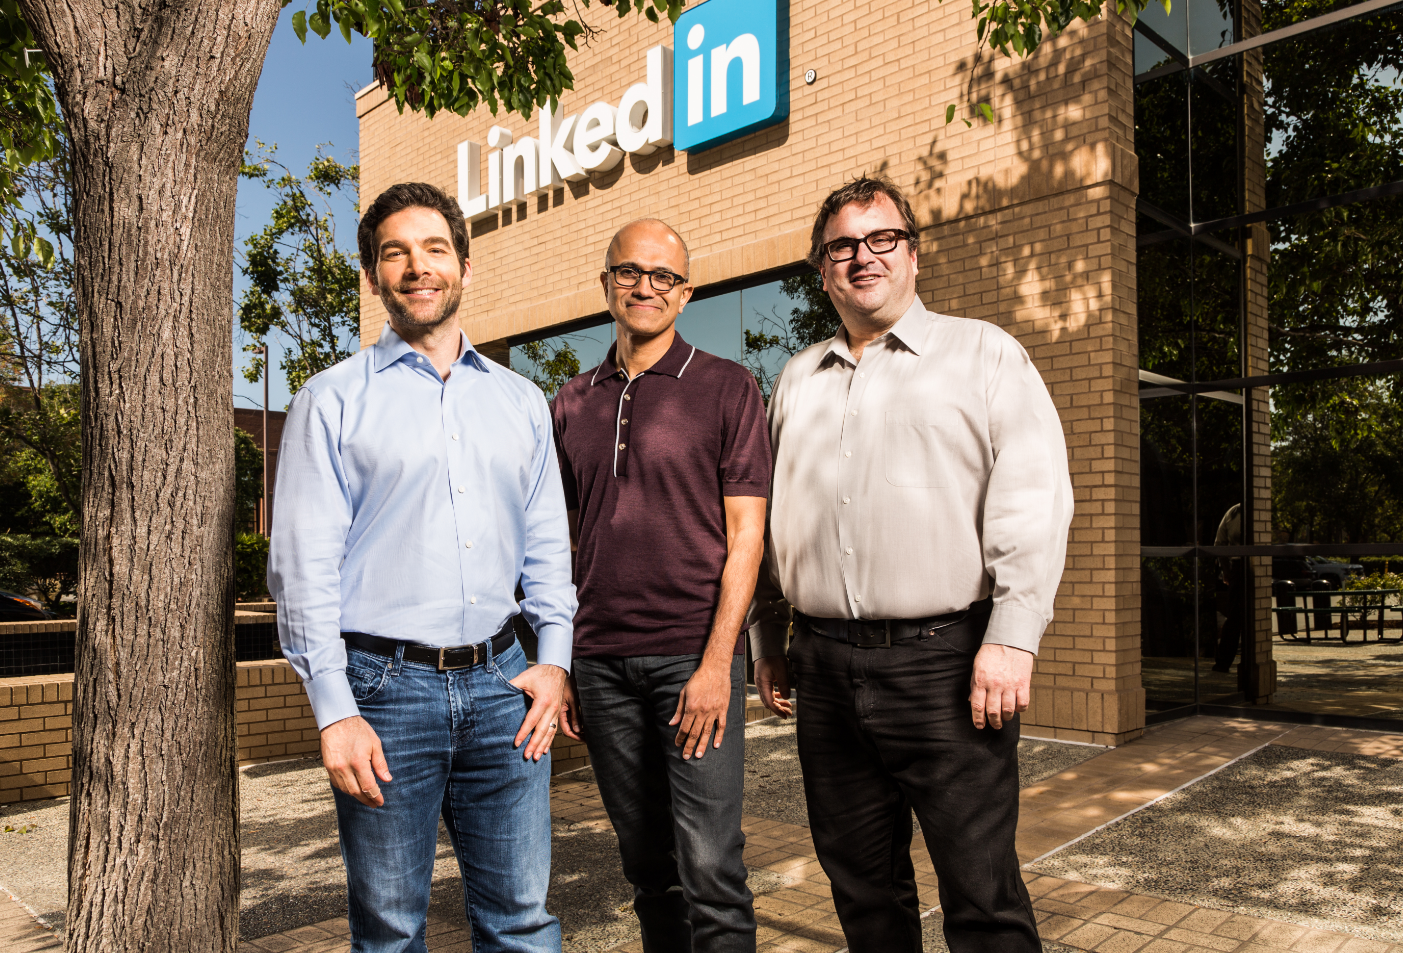 LinkedIn employees standing in front of LinkedIn HQ. Link for Photo Credit: http://news.microsoft.com/2016/06/13/microsoft-to-acquire-linkedin/#sm.0000027kz7v7sbet7vhzyssbdsumu